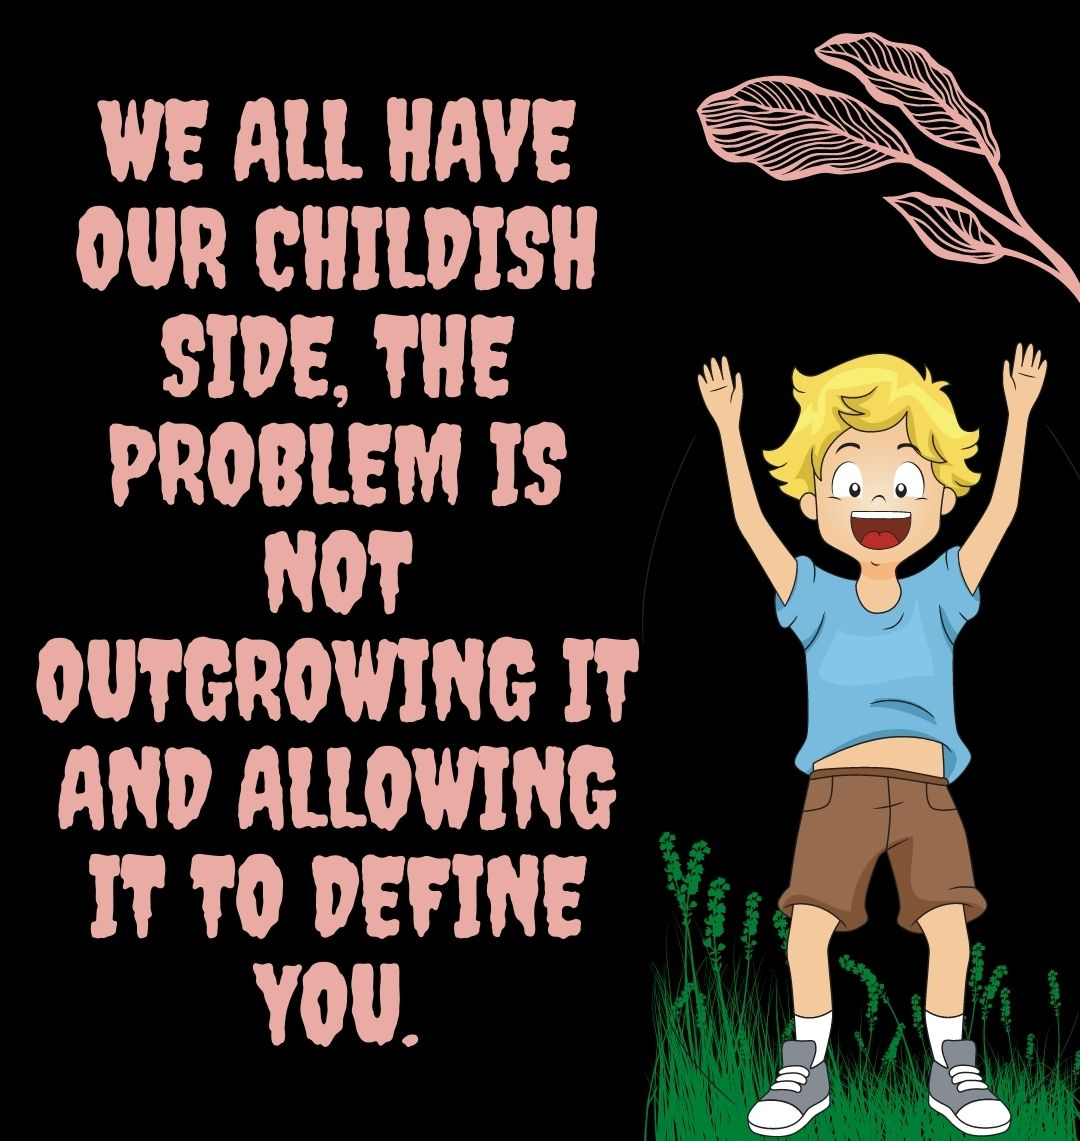 We all have our childish side, the problem is not outgrowing it and allowing it to define you.